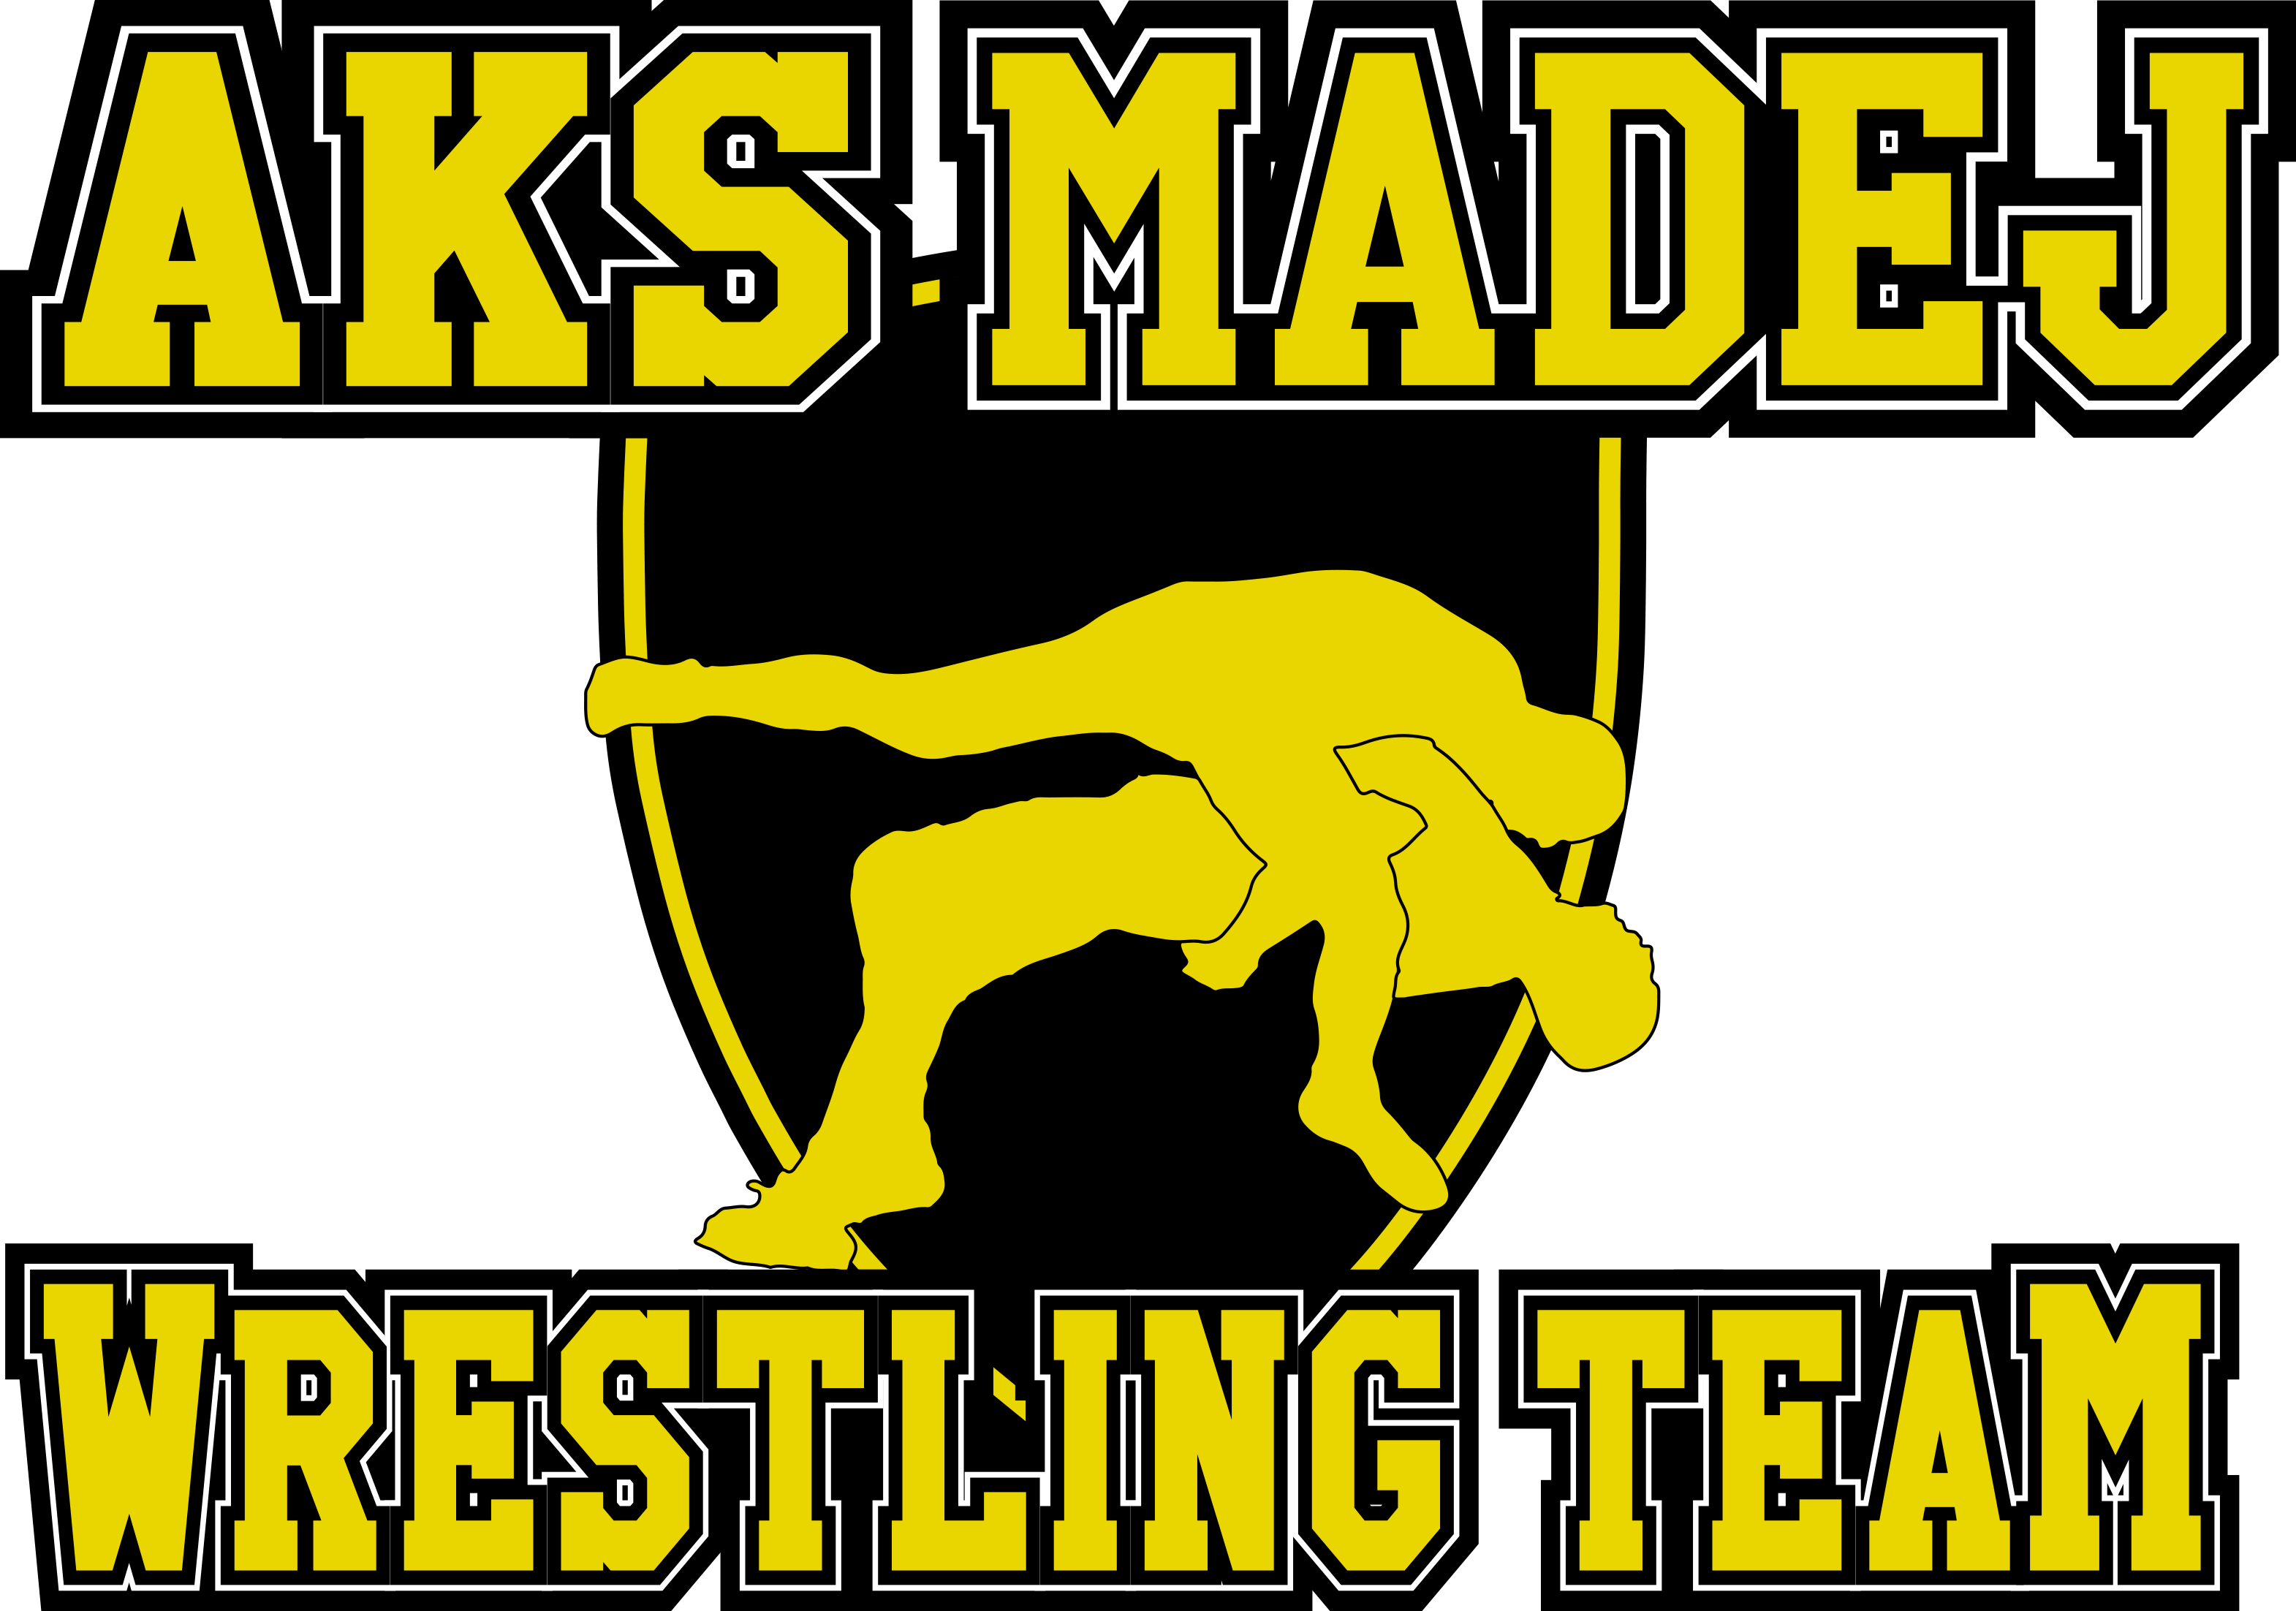 AKS Wrestling Team